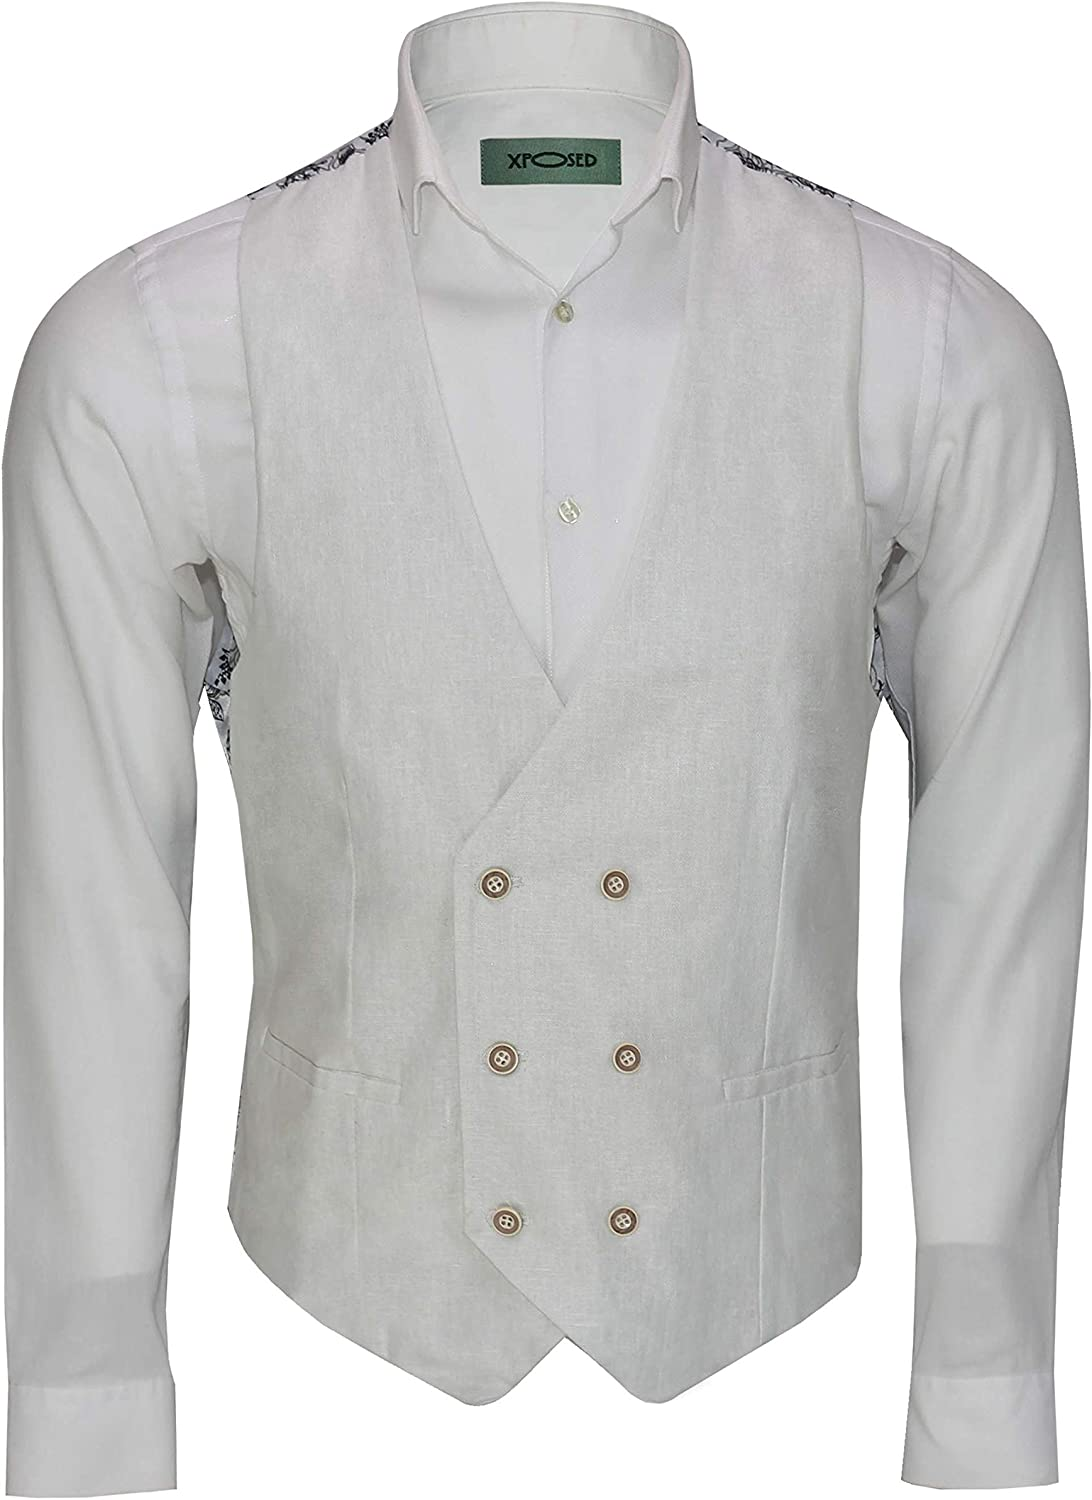 New Vintage Tuxedos, Tailcoats, Morning Suits, Dinner Jackets Xposed Mens Linen Blazer Cotton Blend Retro Vintage Smart Casual Jacket Waistcoat £29.99 AT vintagedancer.com